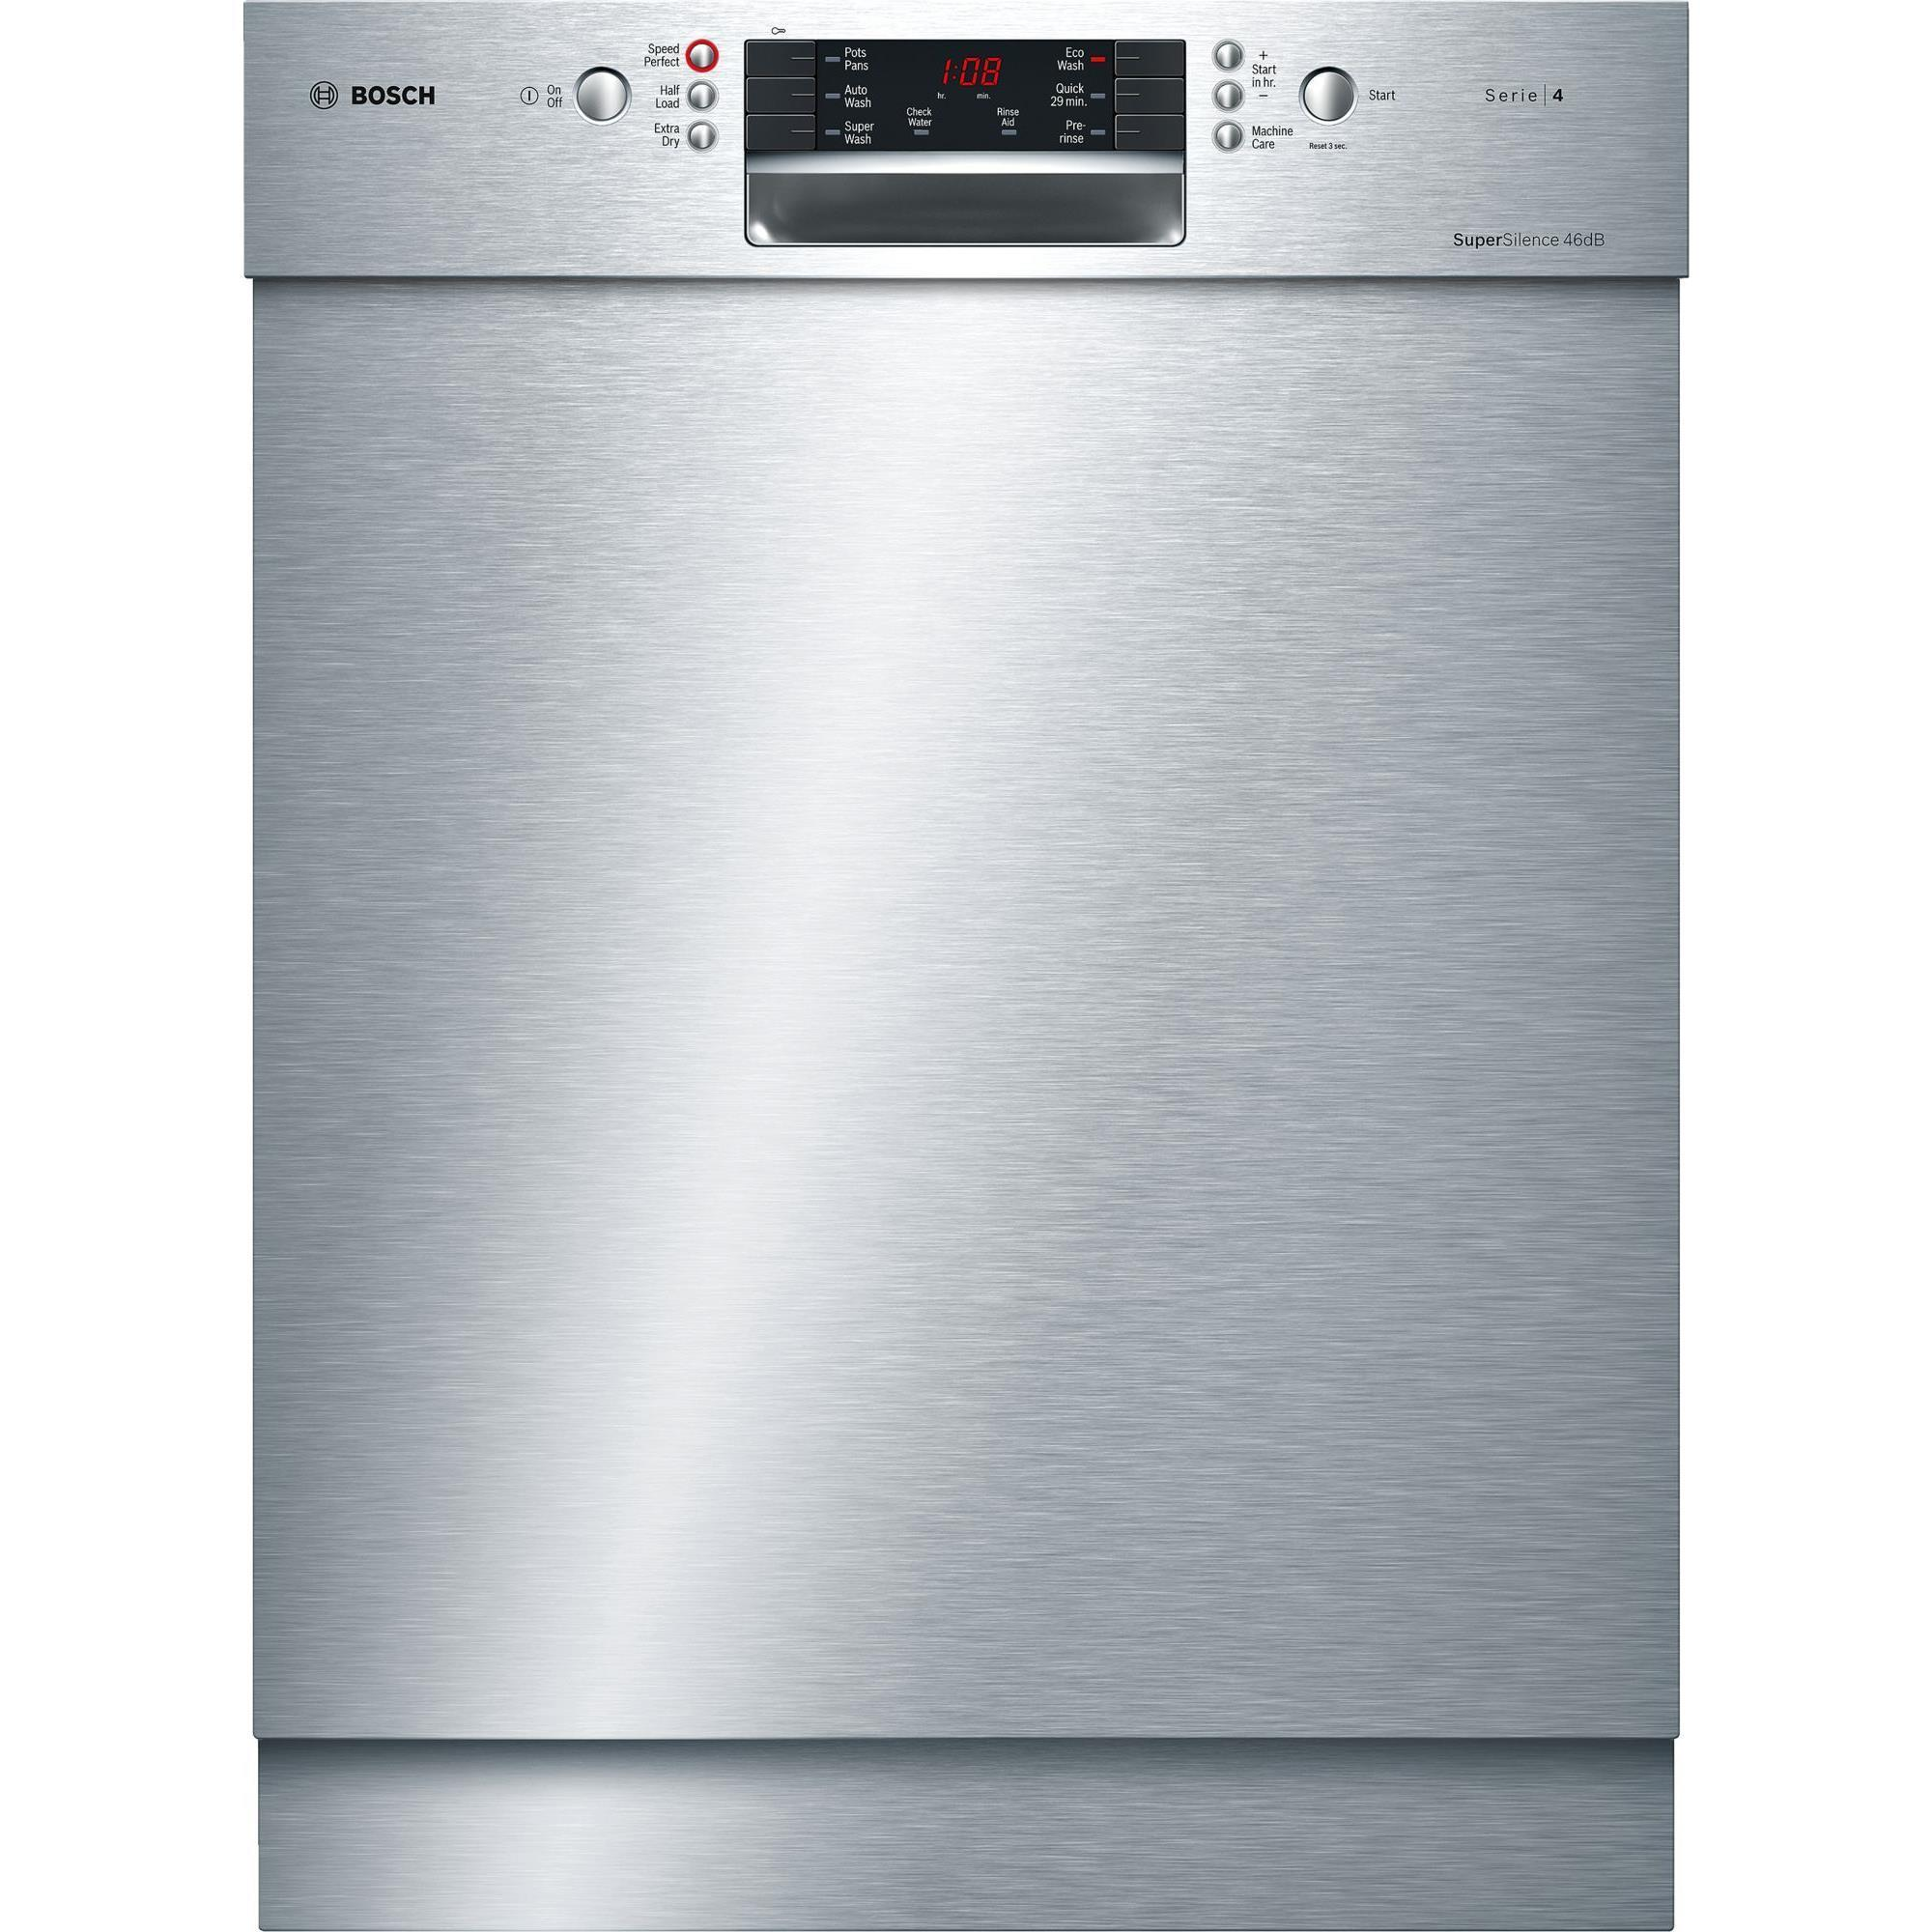 Bosch SMU46GS01A Built-in Dishwasher (Stainless Steel)